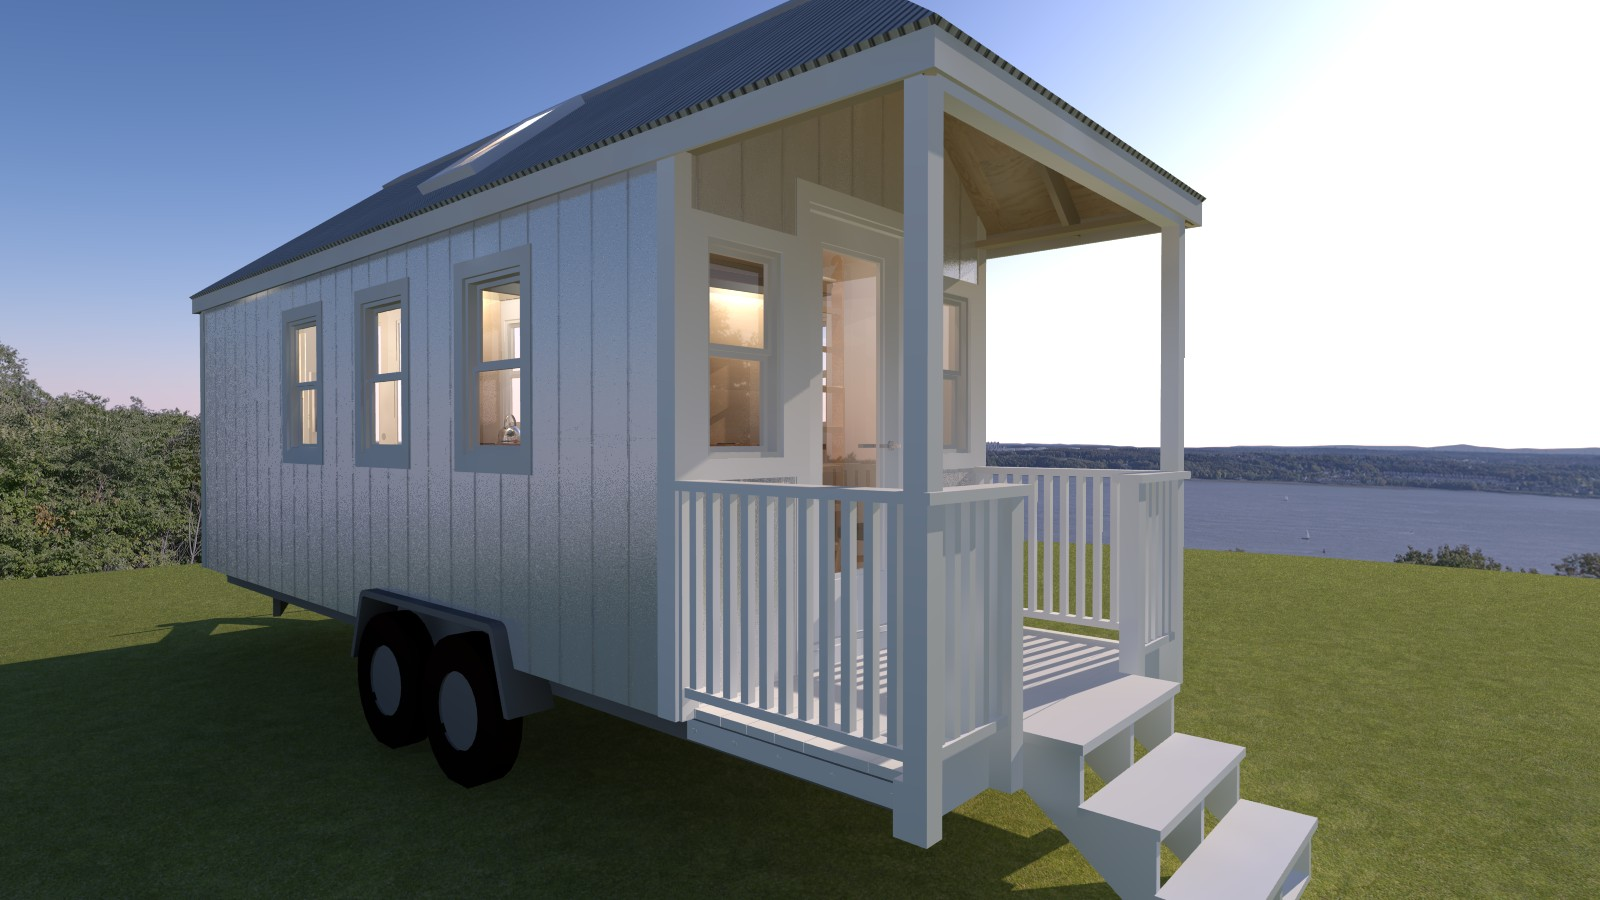 Boonville 24 tiny house plans Tiny house plans with porches